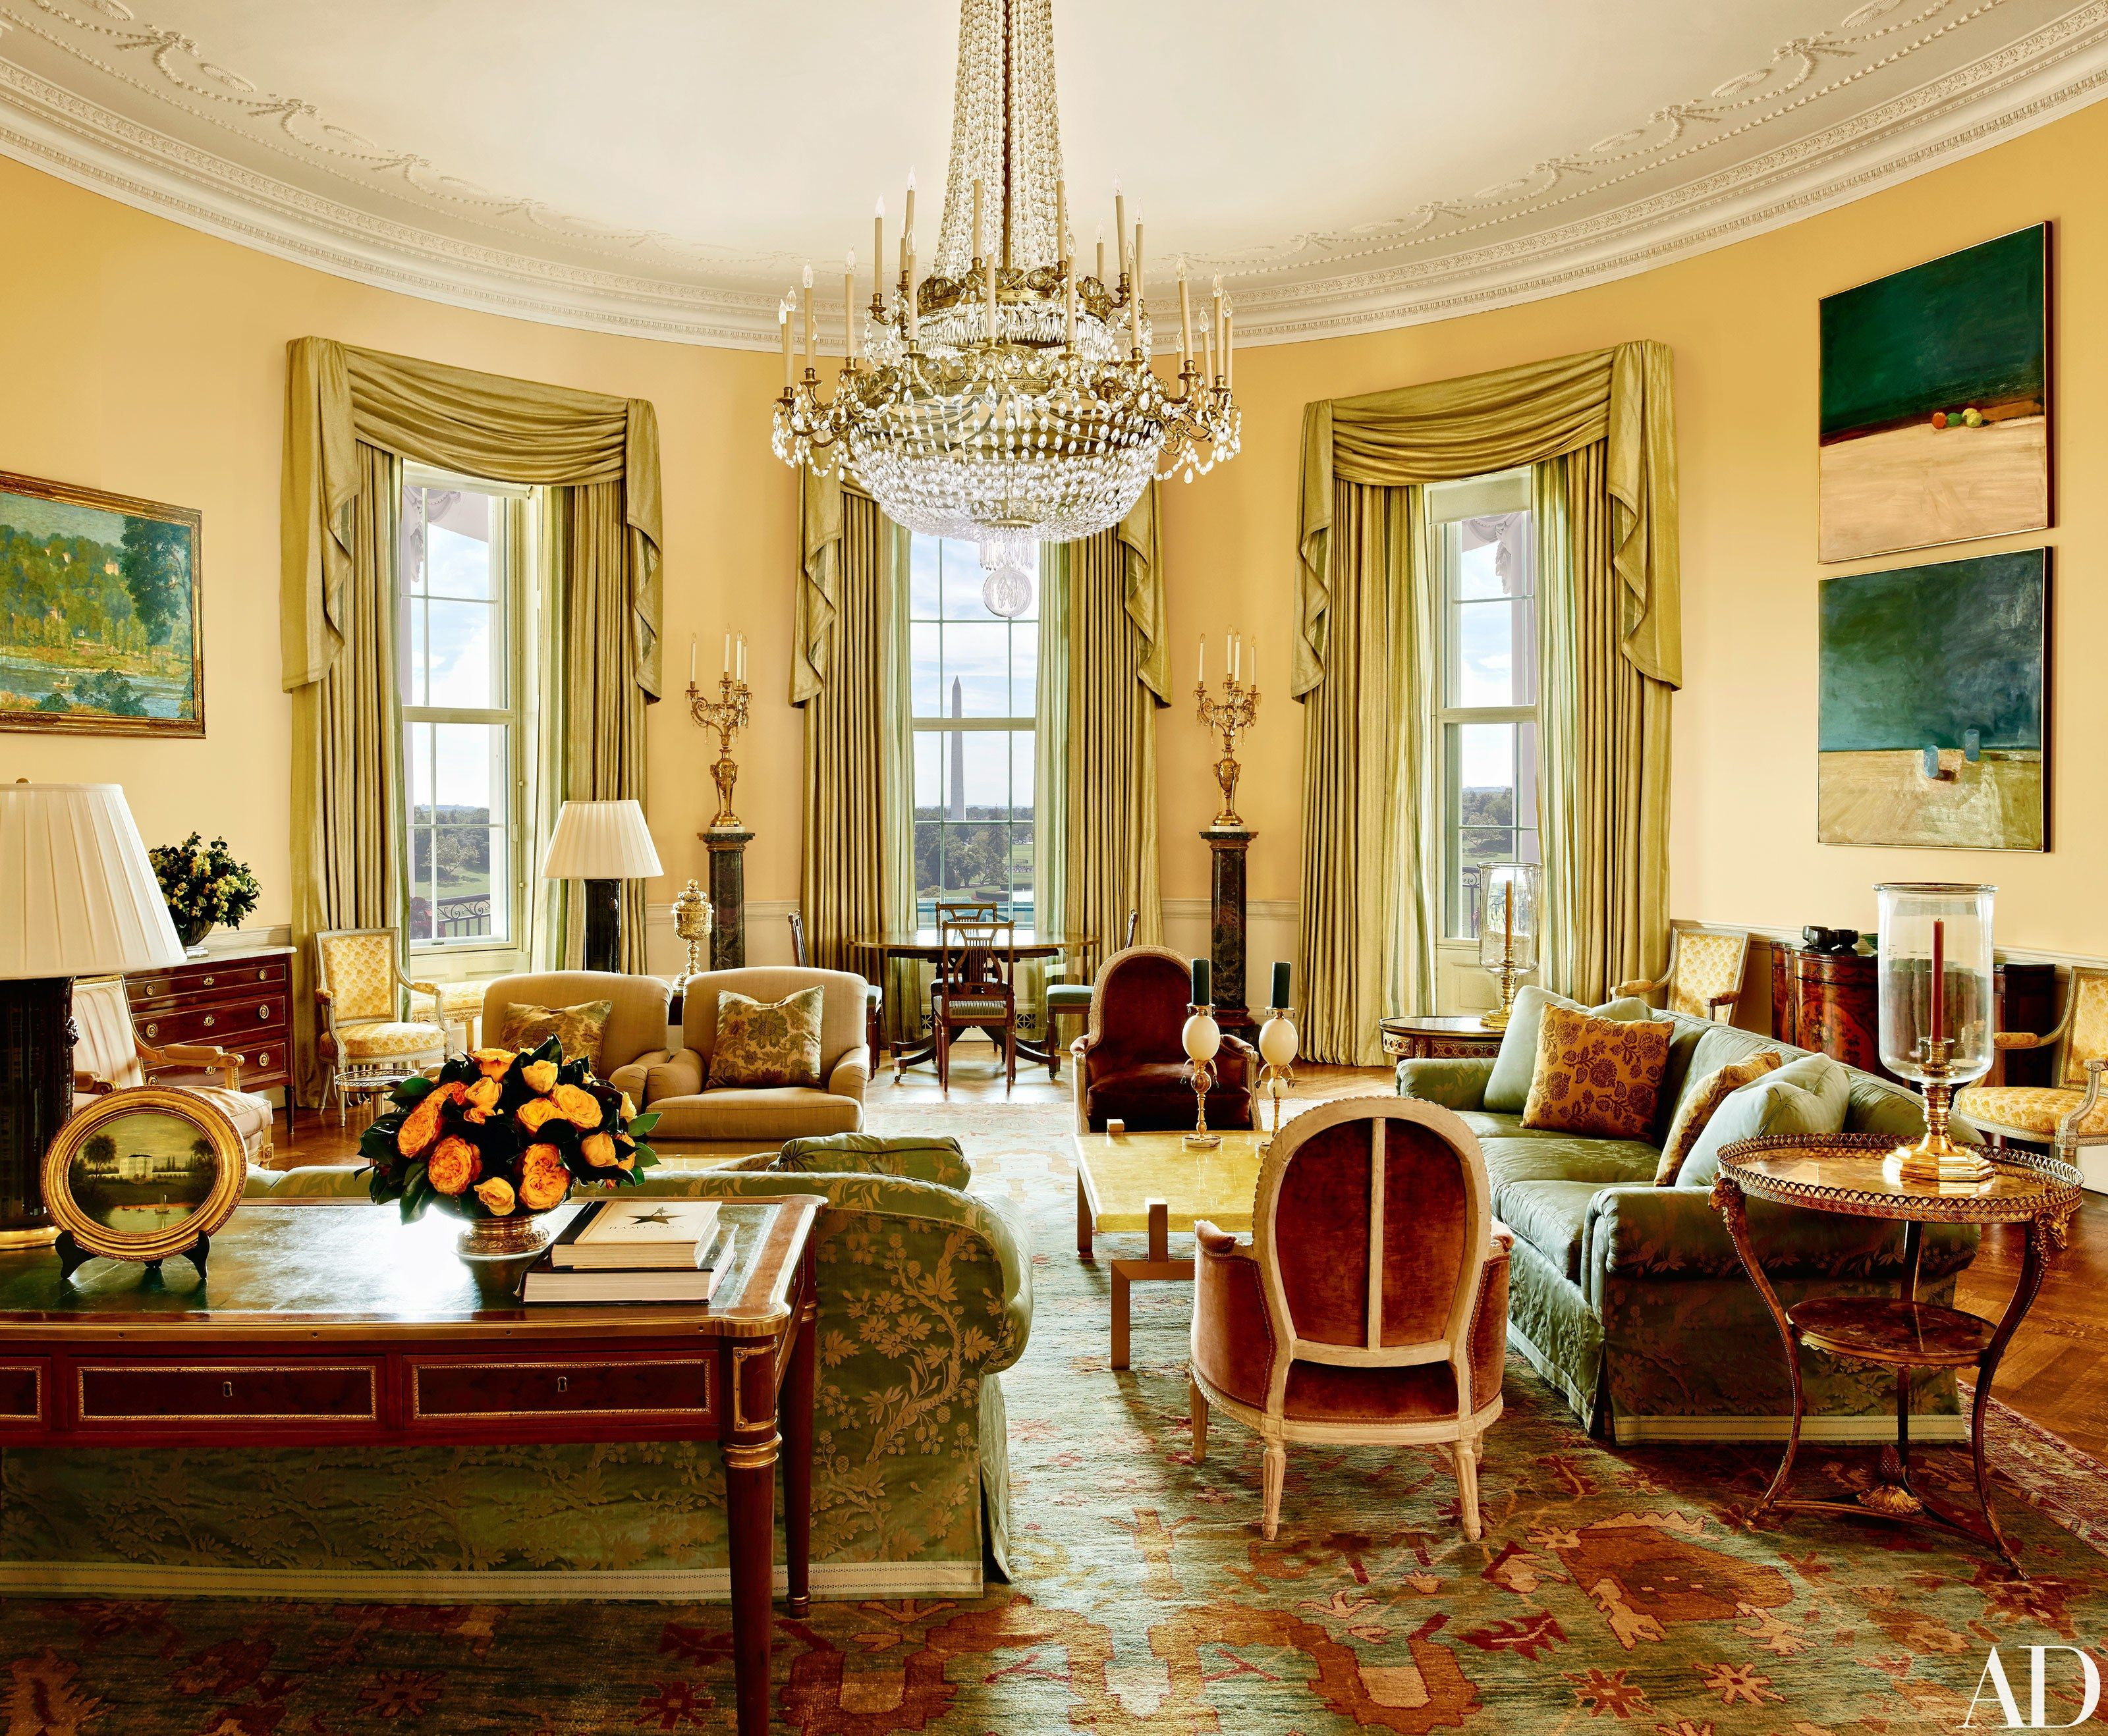 Beautiful The Obama Familyu0027s Stylish Private World Inside The White House Photos    Architectural Digest